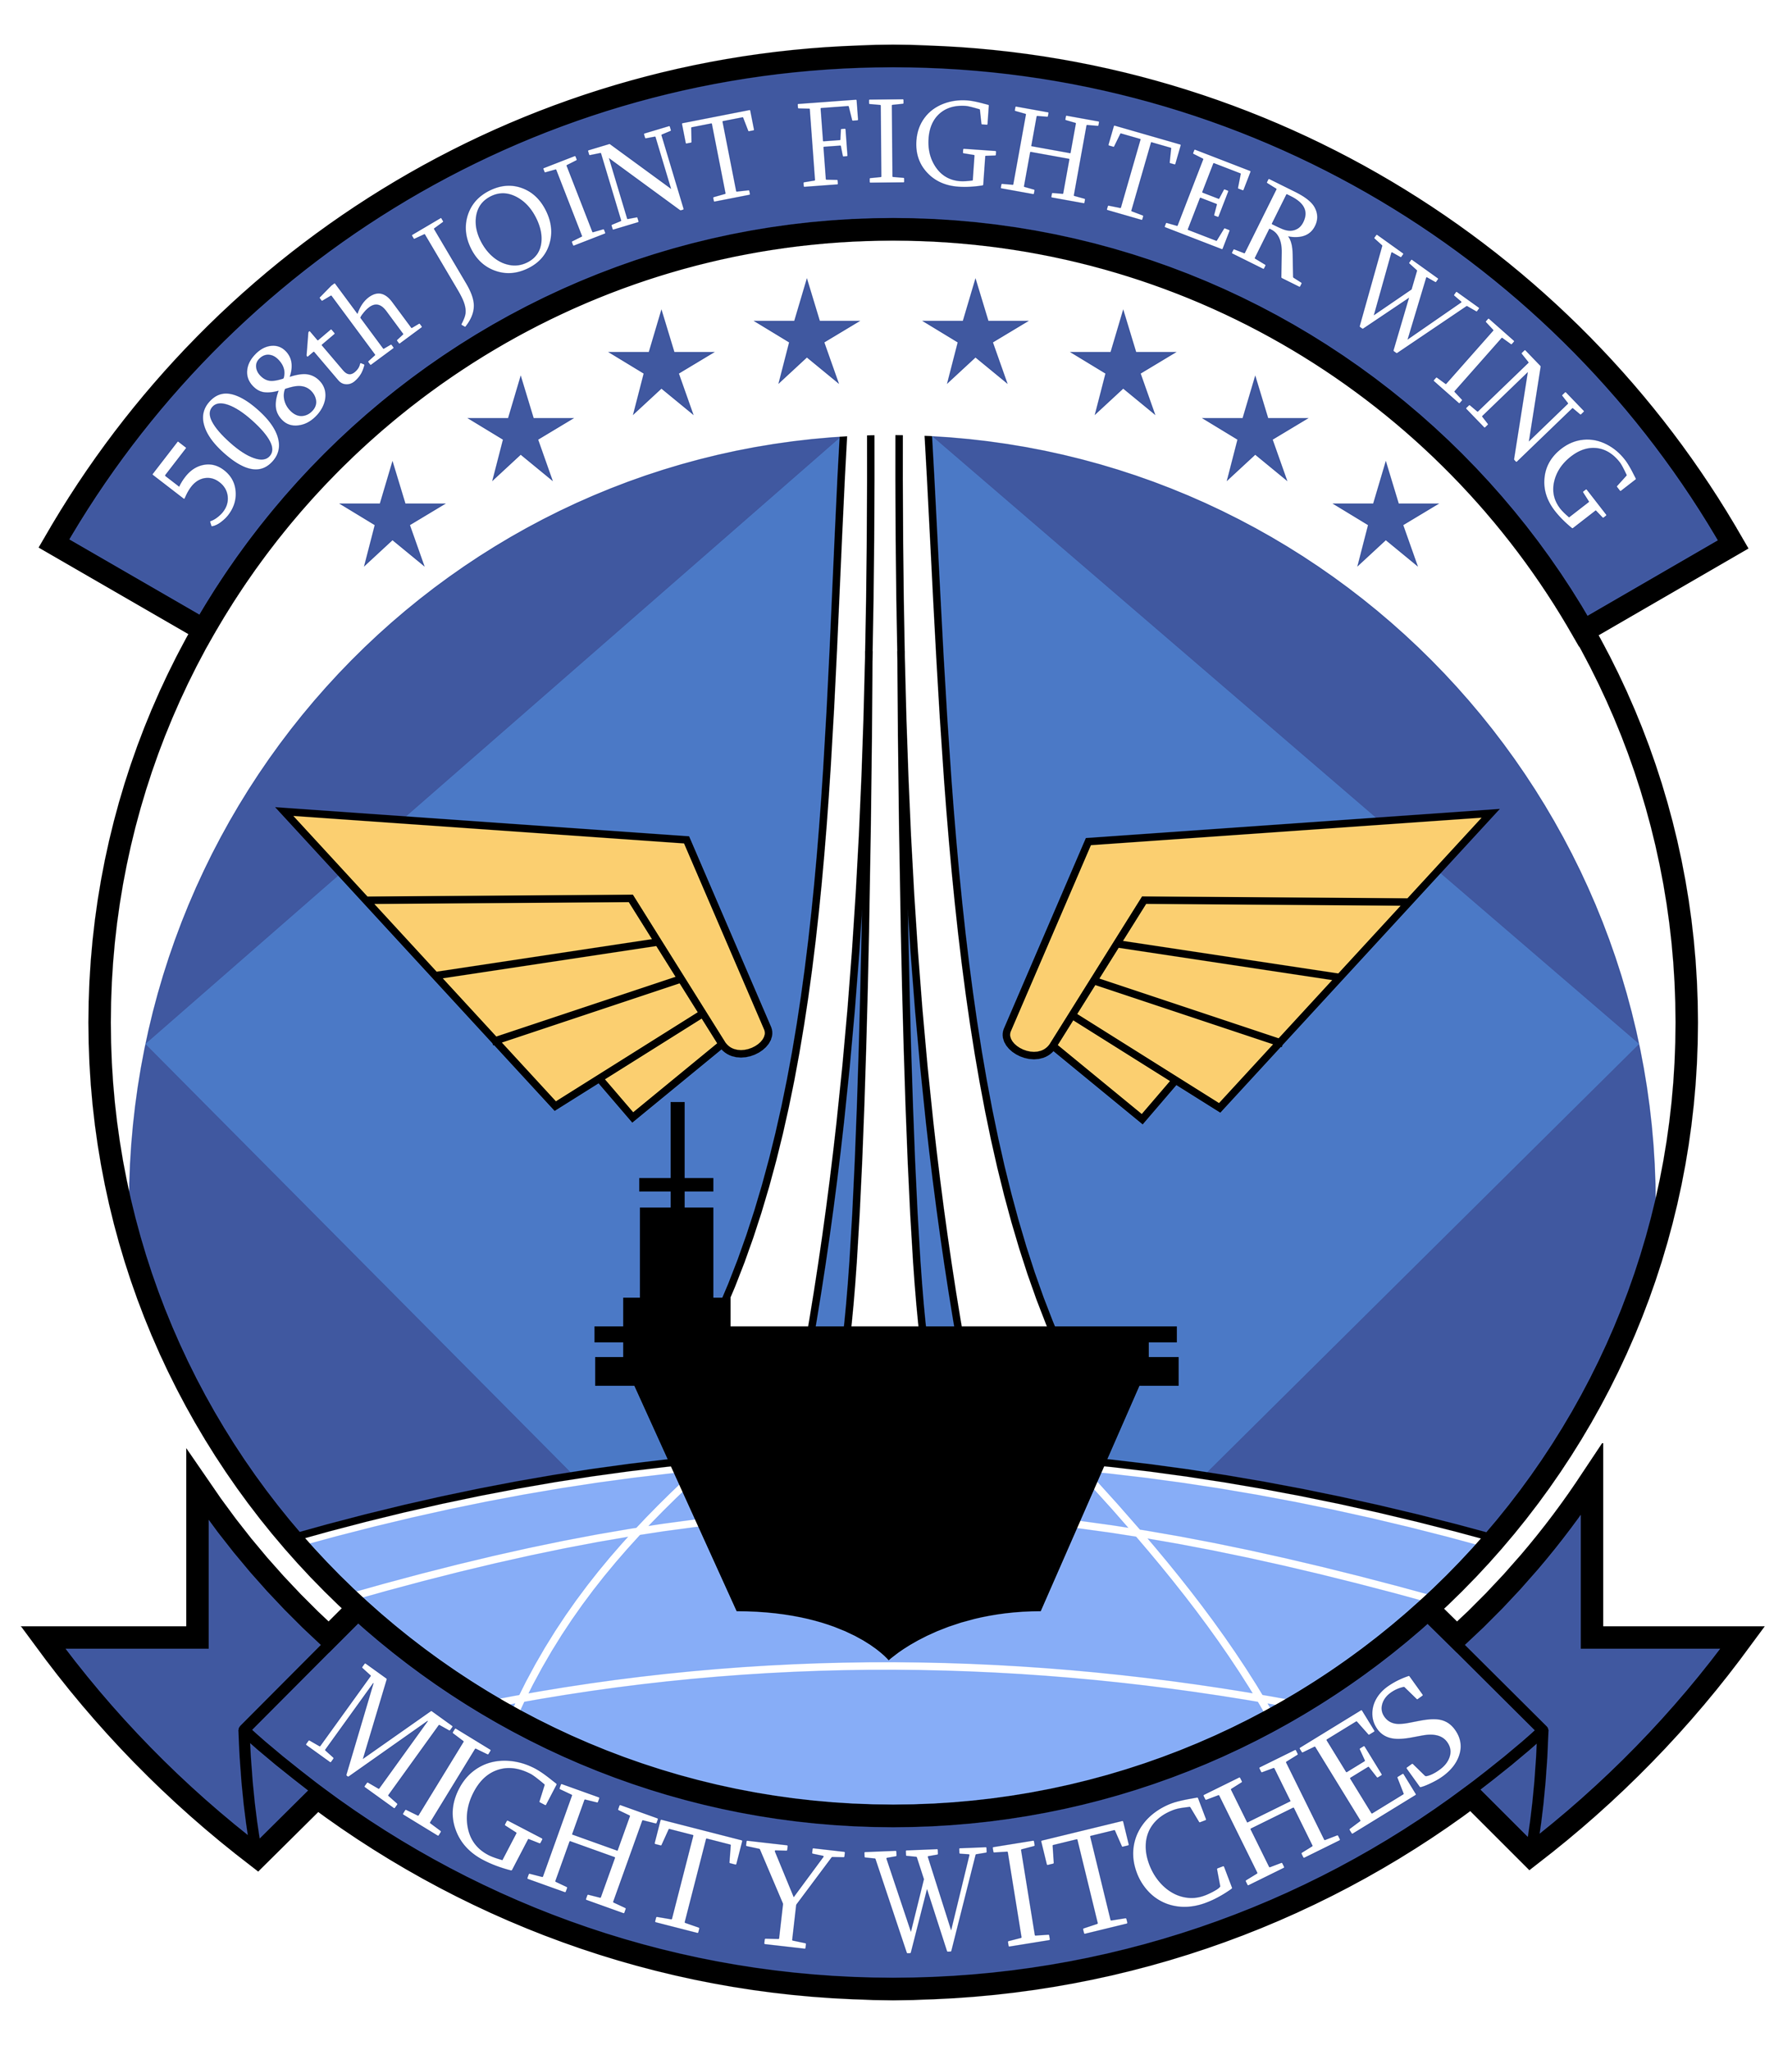 508th Joint Fighter Wing